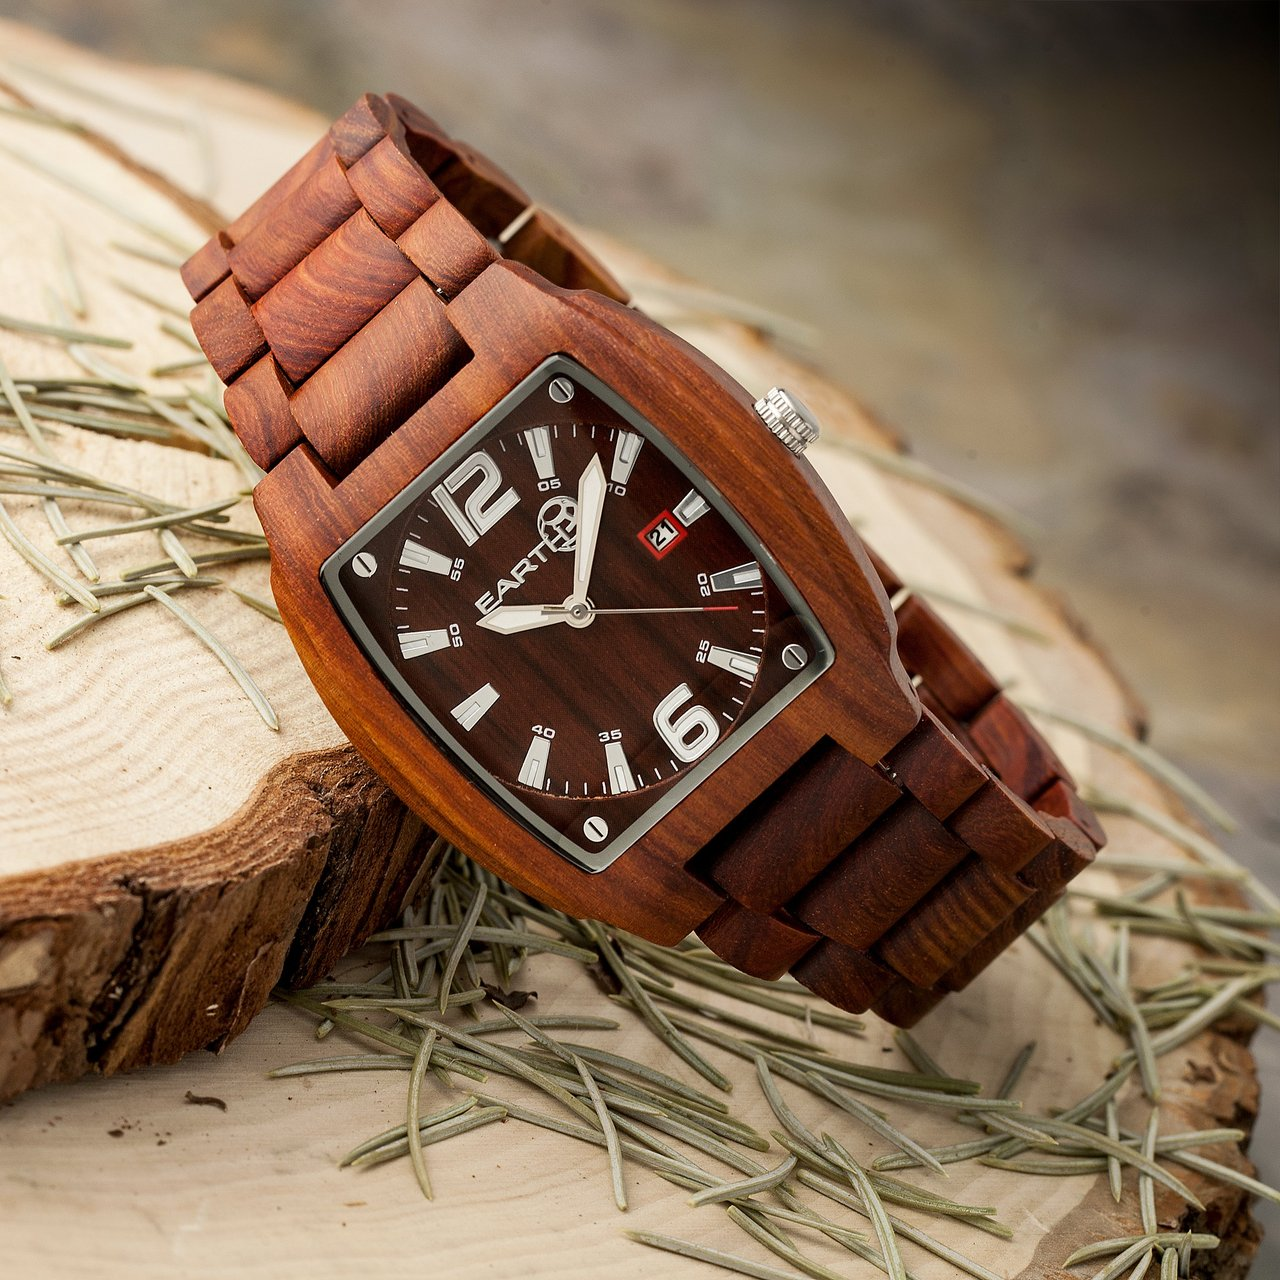 Earth Wood Sagano Eco-Friendly Sustainable Wood Watch